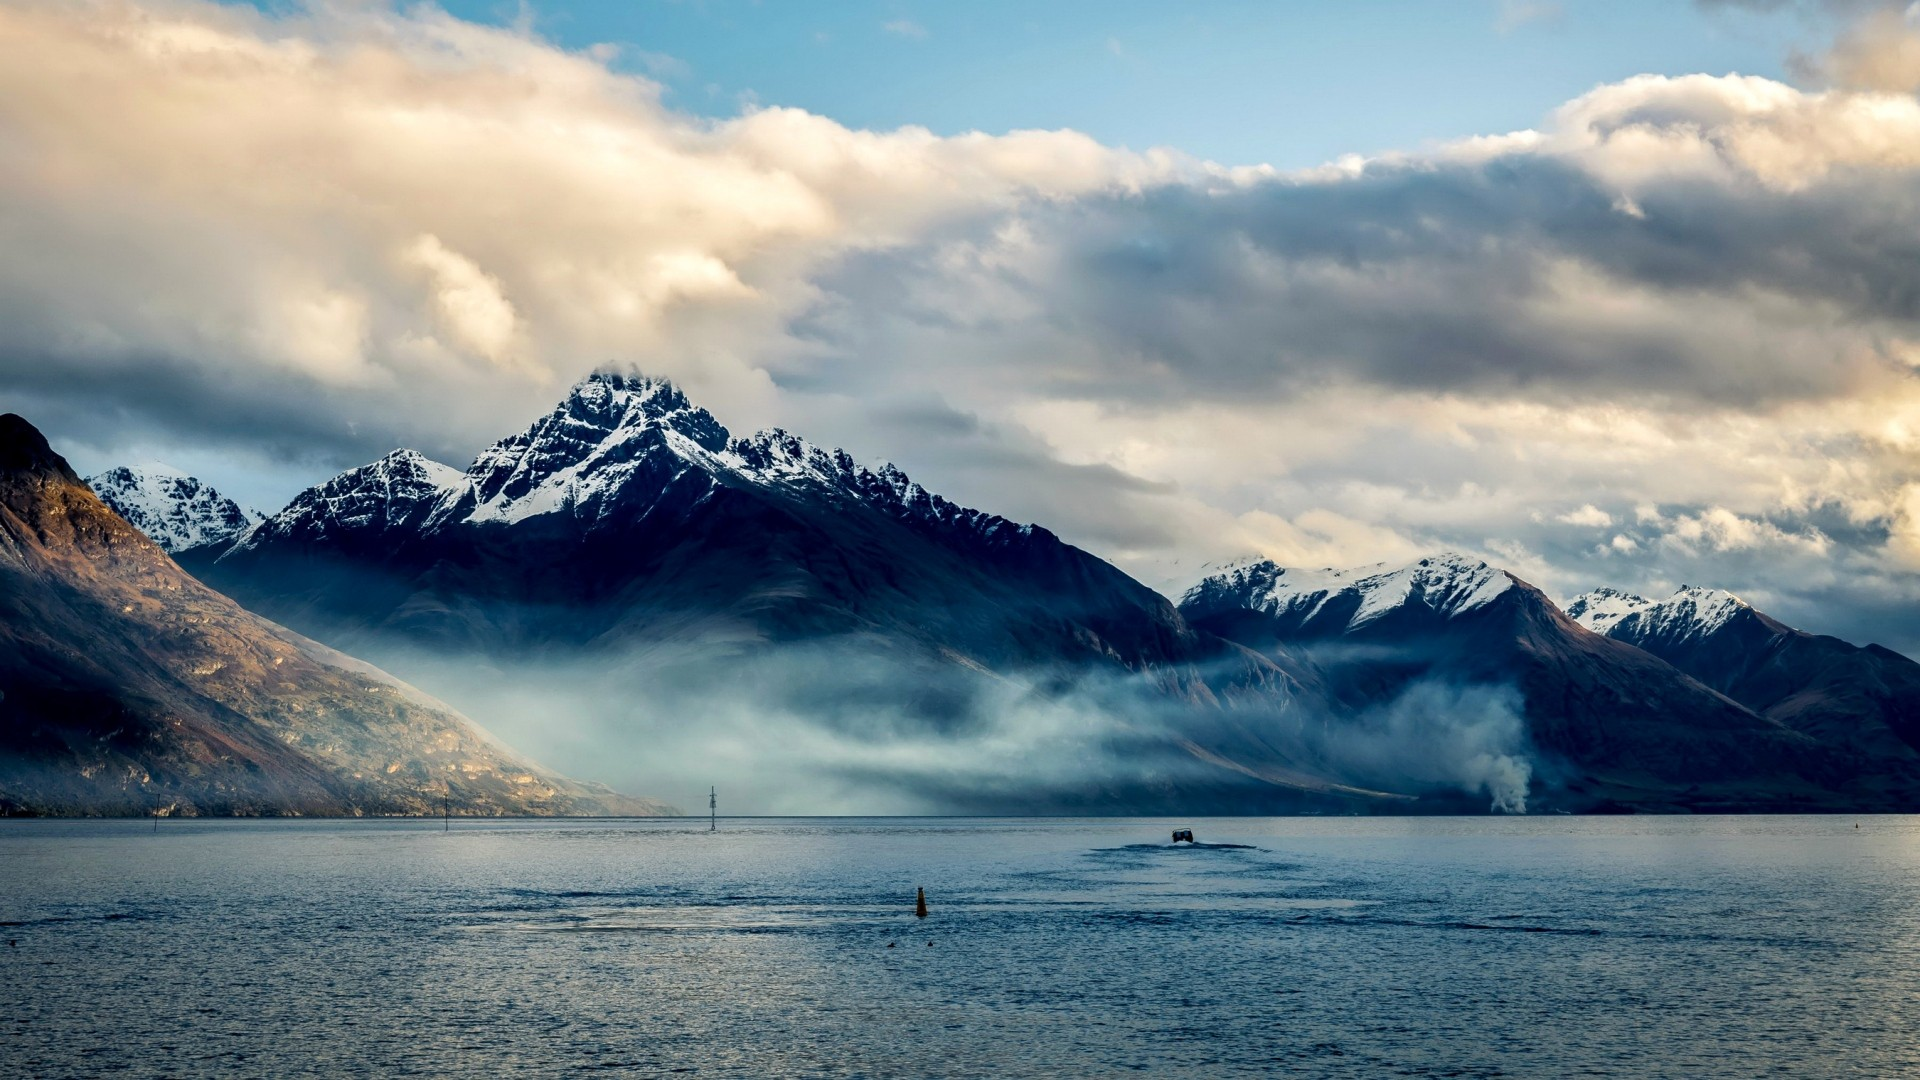 Wallpaper New Zealand, Sea, Mountains, Sky, Clouds - New Zealand Mountains And Sea - HD Wallpaper